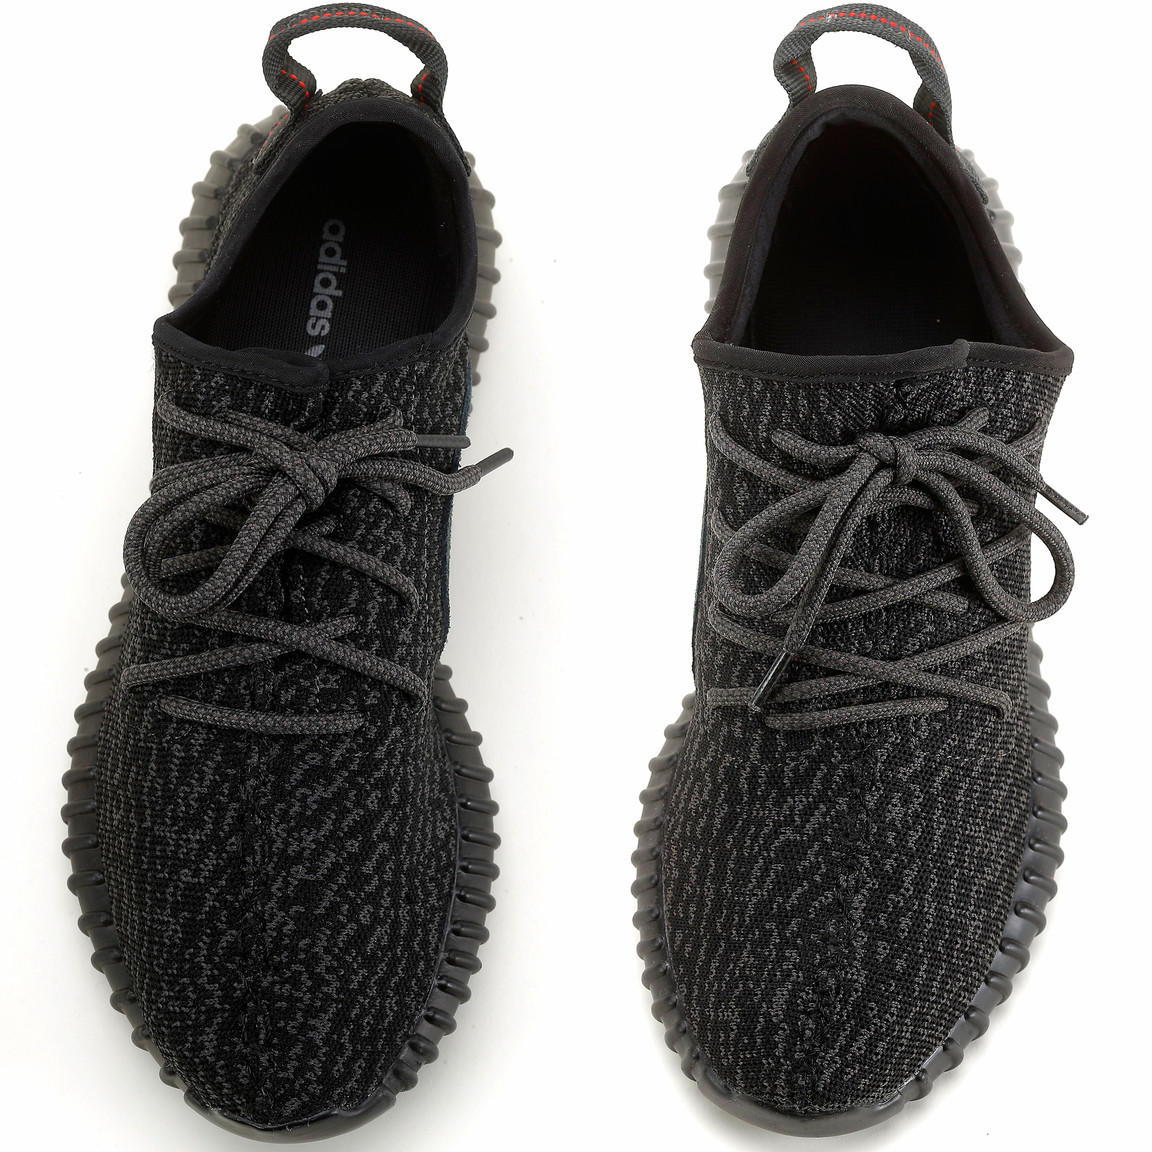 498206cad47 Counterfeit Yeezys and the booming sneaker black market - Los ...